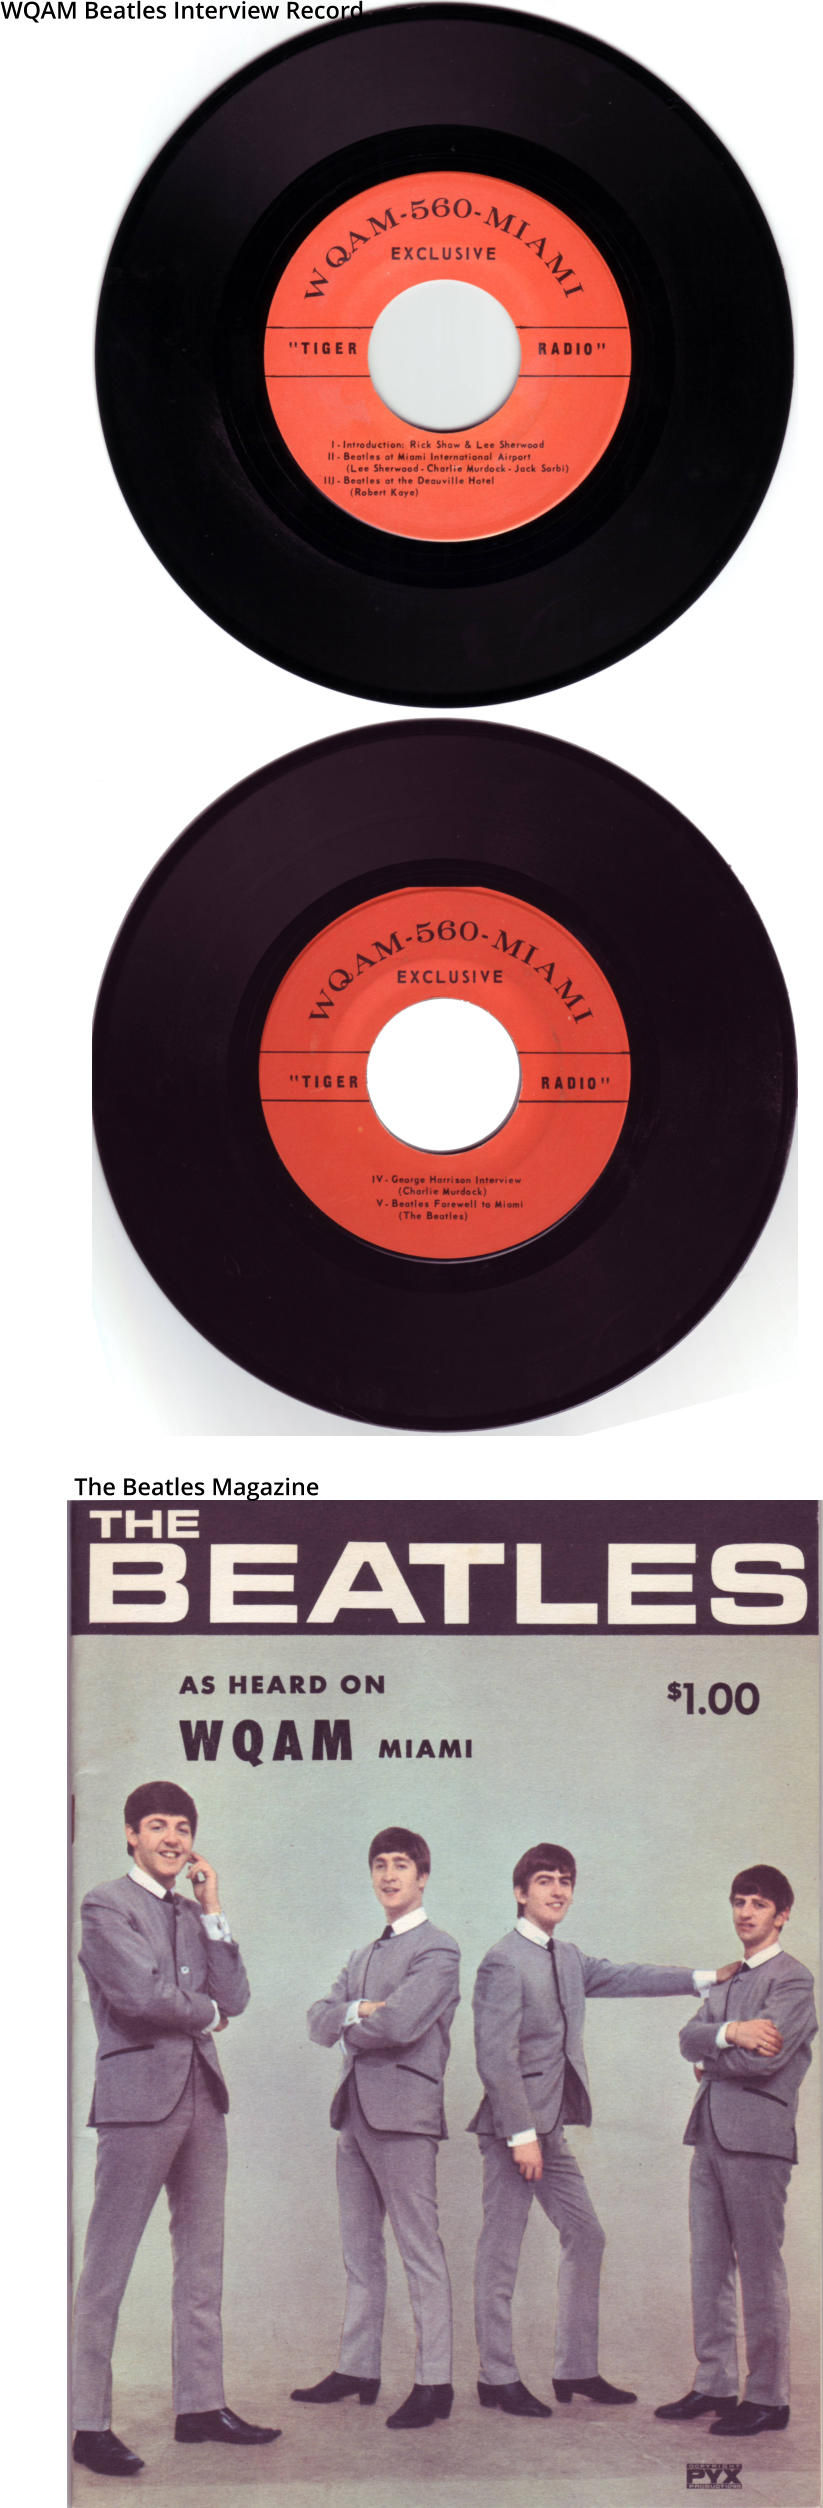 WQAM Beatles Interview Record The Beatles Magazine